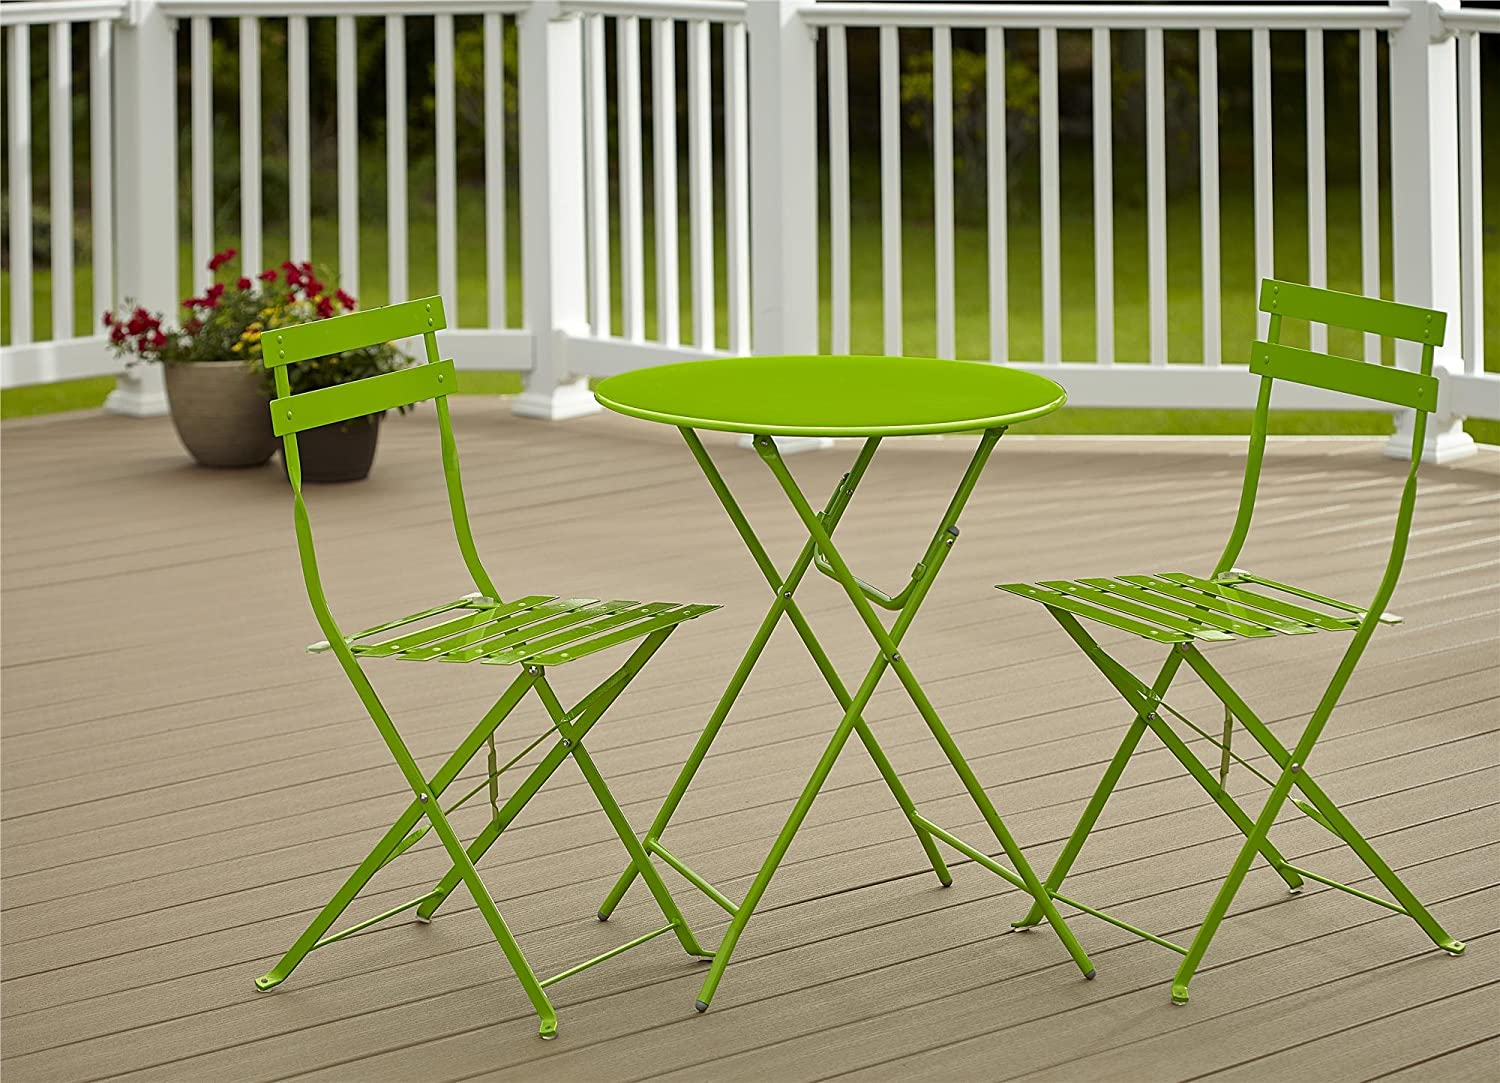 Treasure Garden X-Large Oval Rectangle Table Chairs w 8 ties no center hole – Protective Furniture Covers